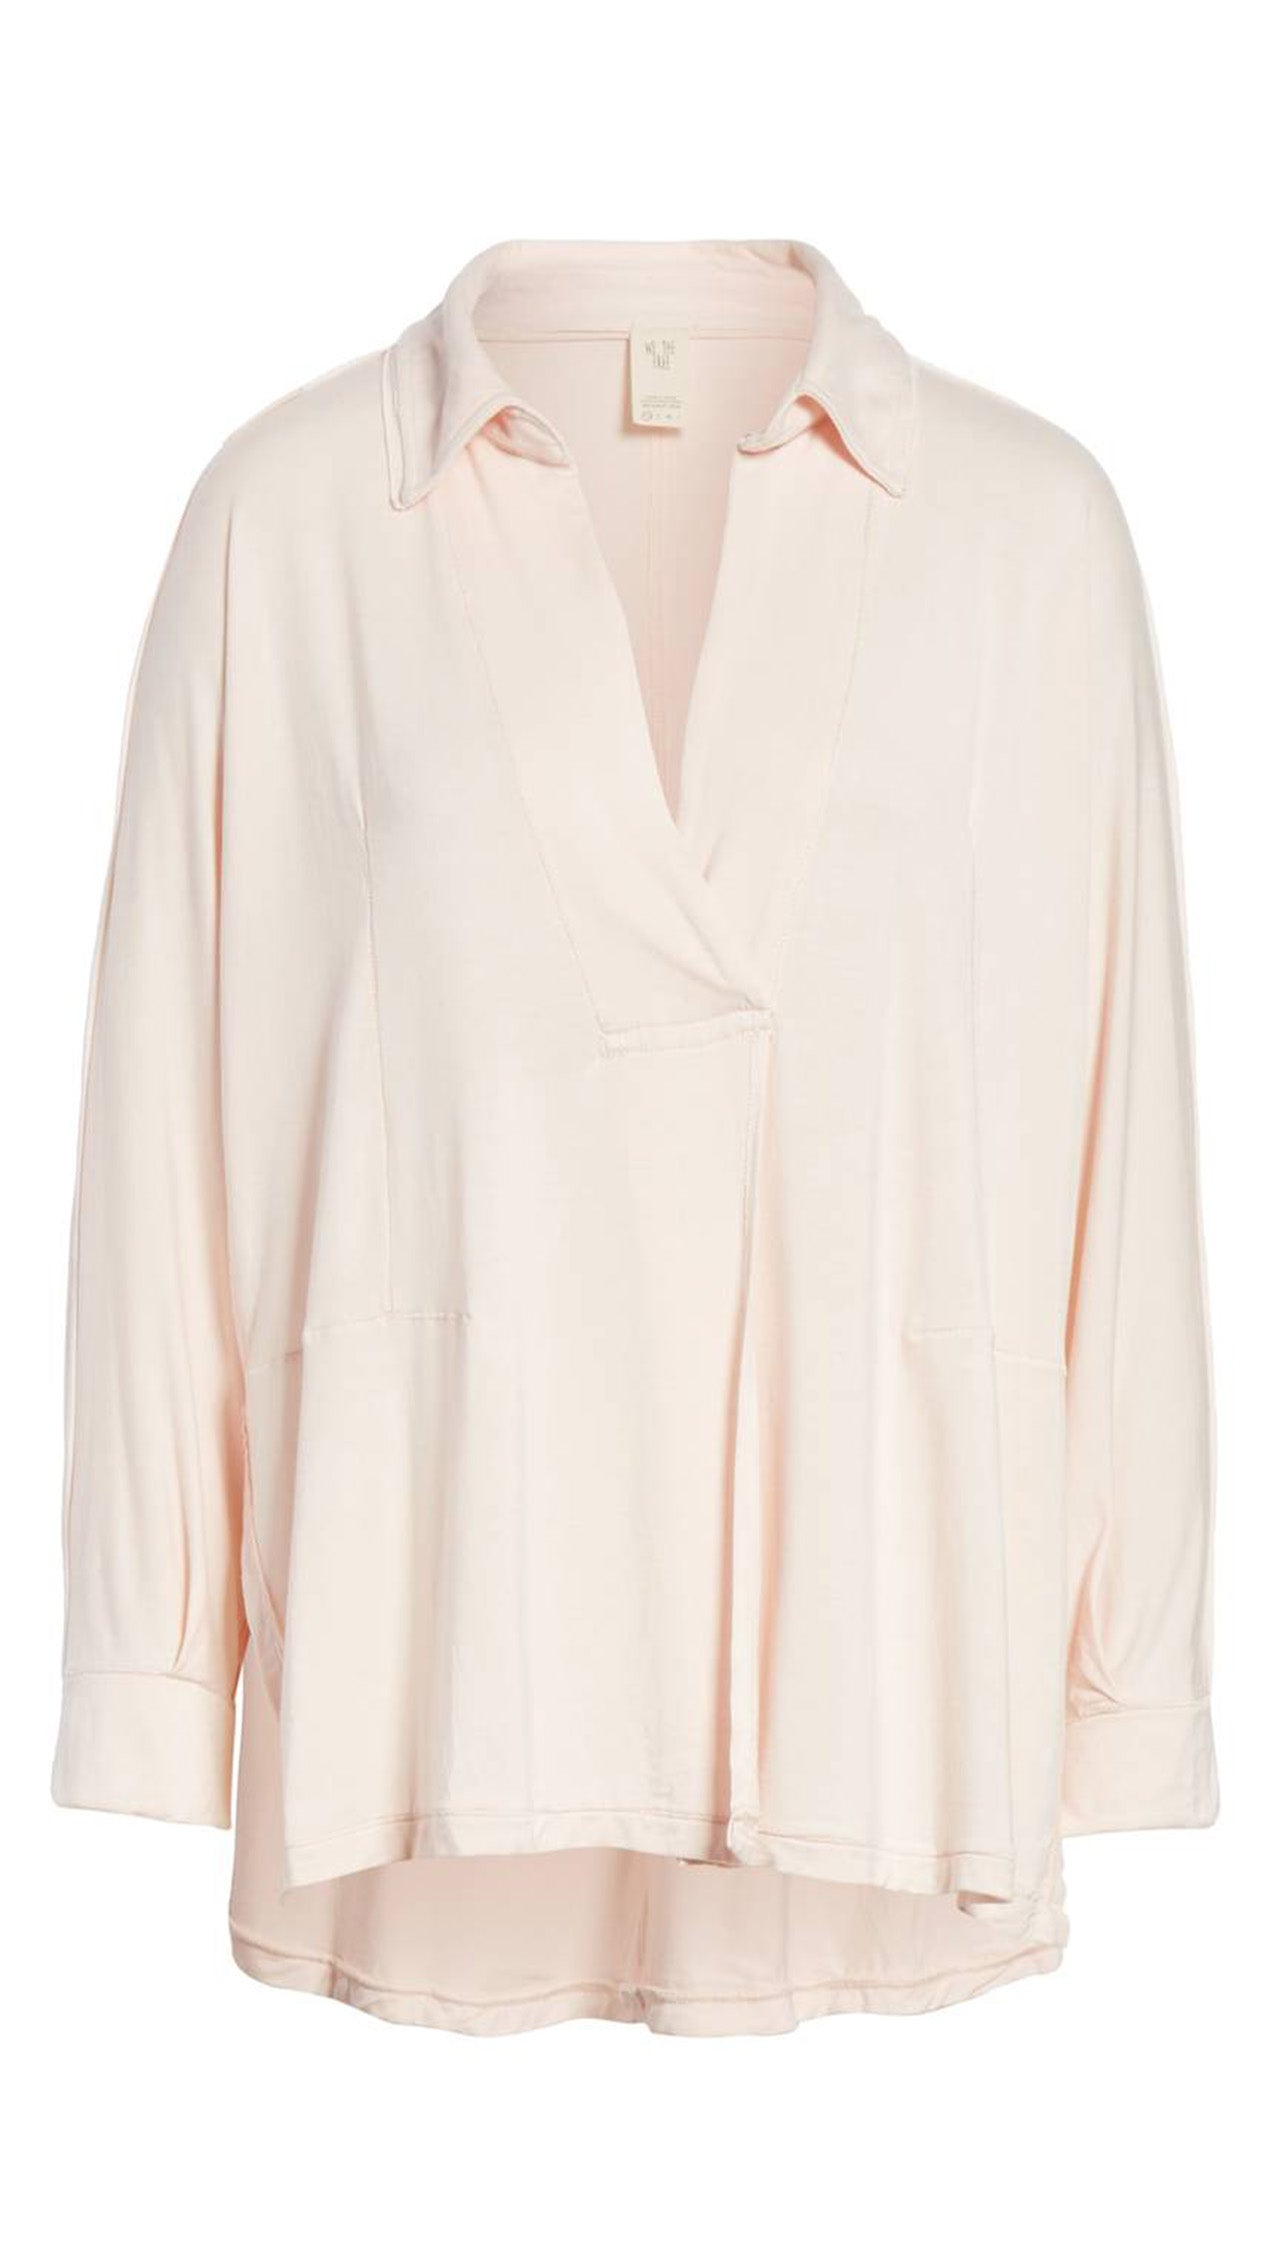 Free People Can't Fool Me Collar V Neck Tee Blouse Soft Peach Pink